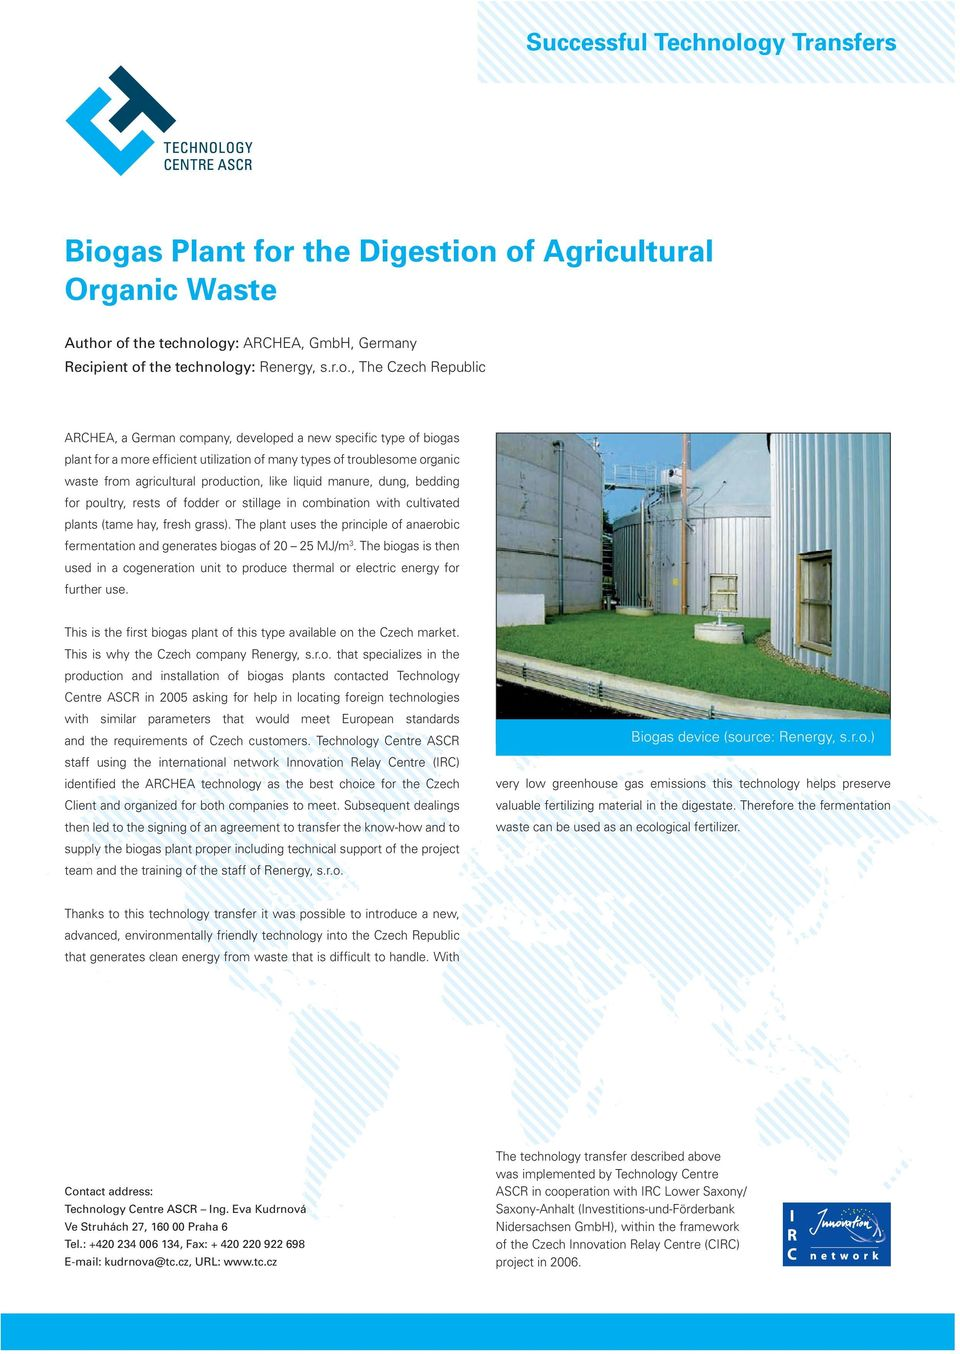 German company, developed a new specific type of biogas plant for a more efficient utilization of many types of troublesome organic waste from agricultural production, like liquid manure, dung,